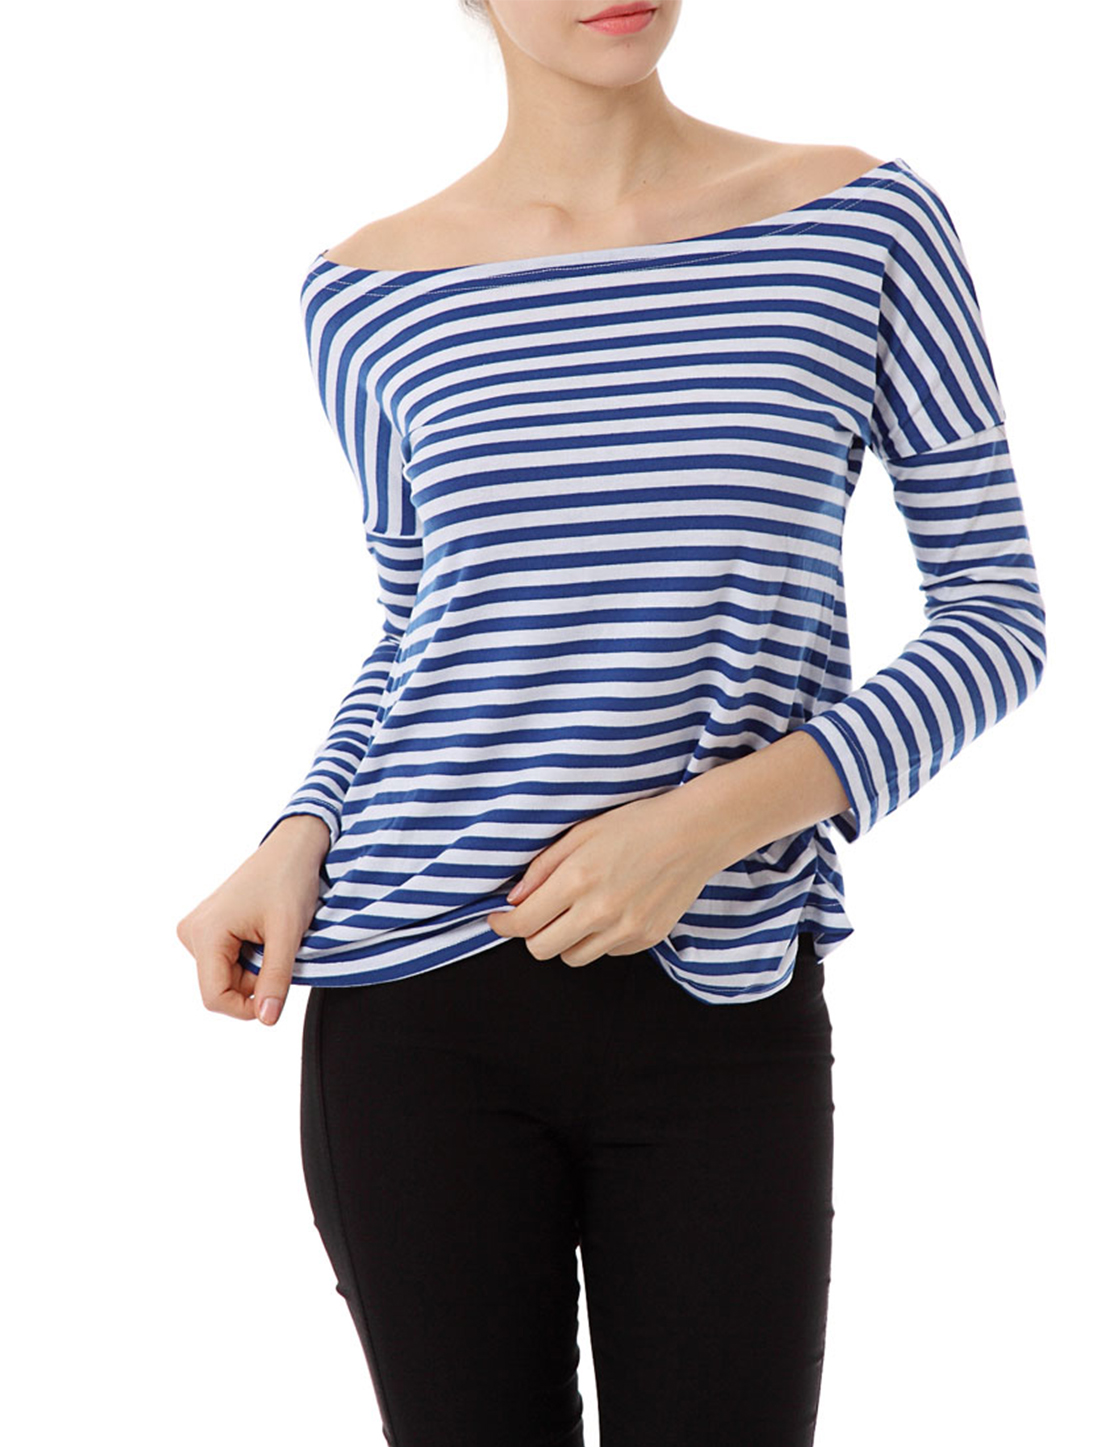 Woman Blue White Stripe Boat Neck Long Sleeve Shirt Tops S